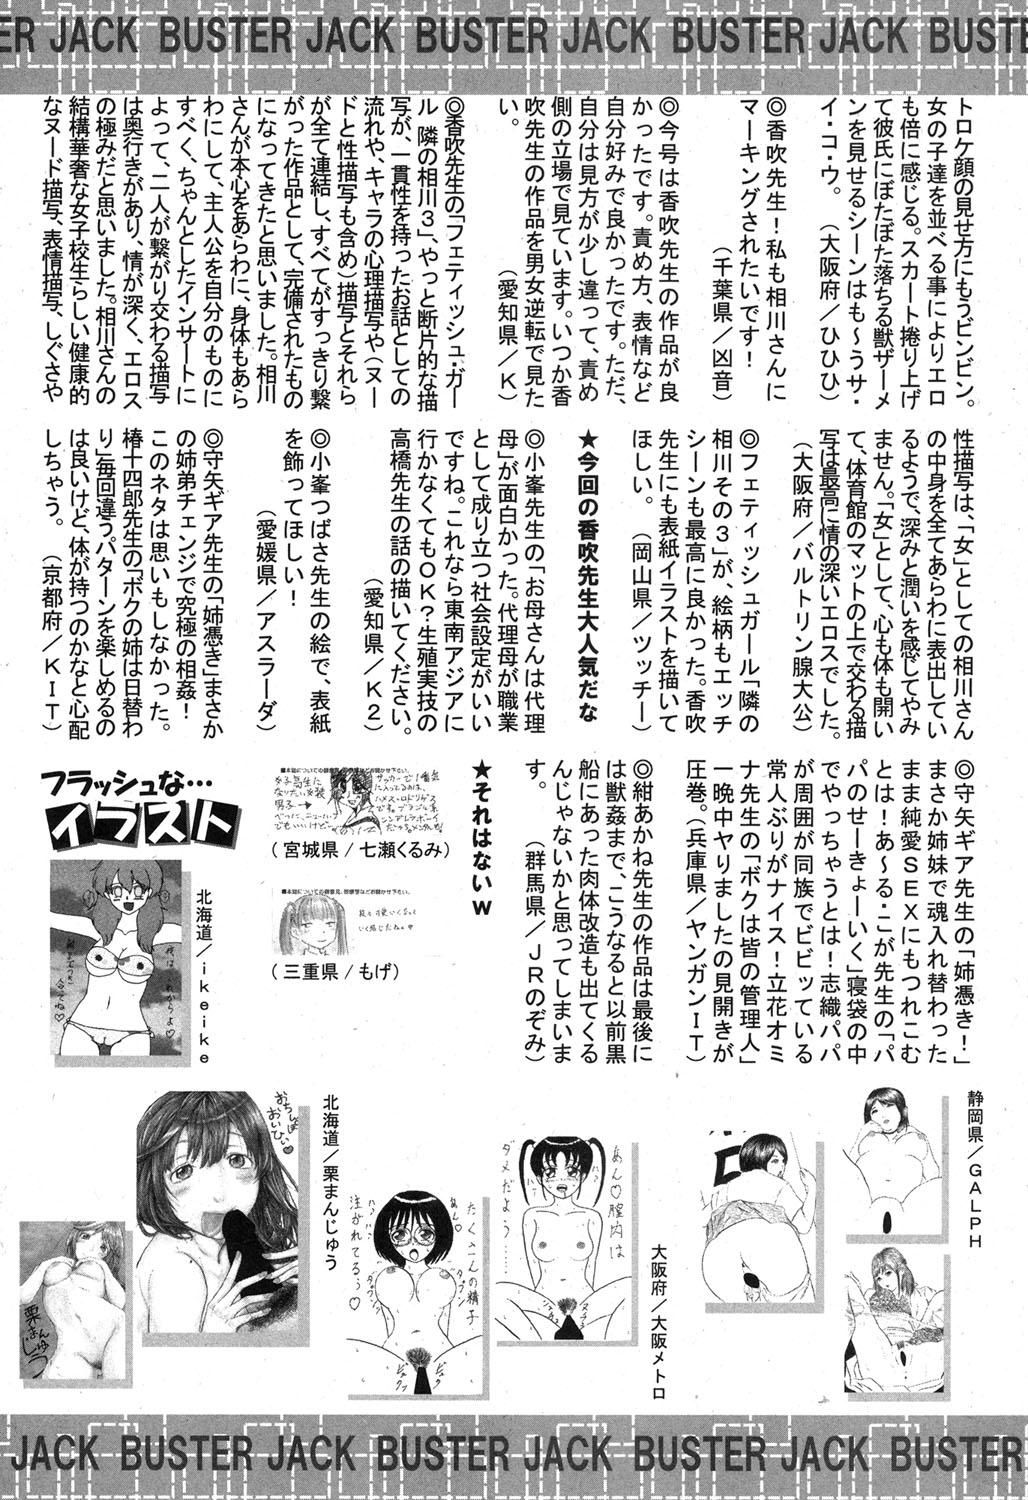 BUSTER COMIC 2015-11 350